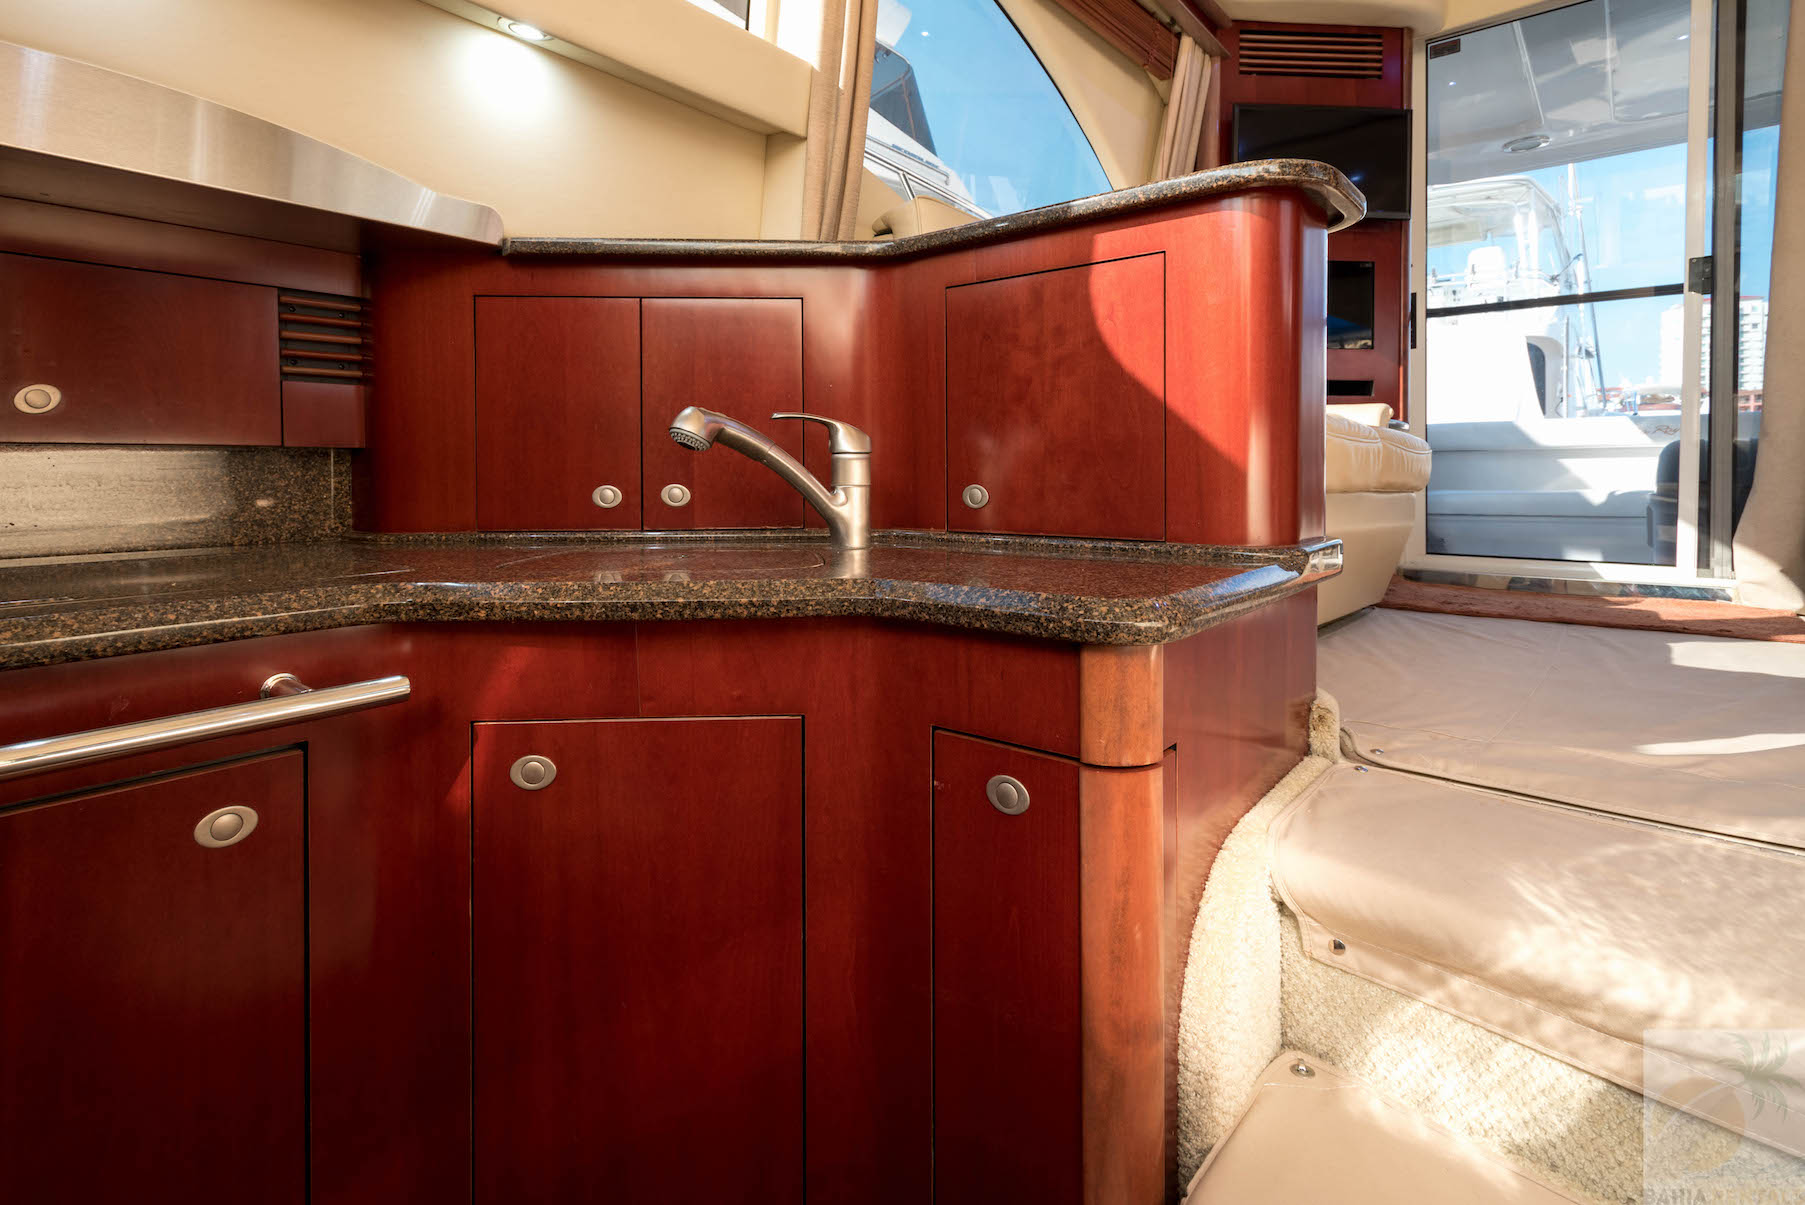 44 ft. Sea Ray – Luxury Power Yacht - Down Galley